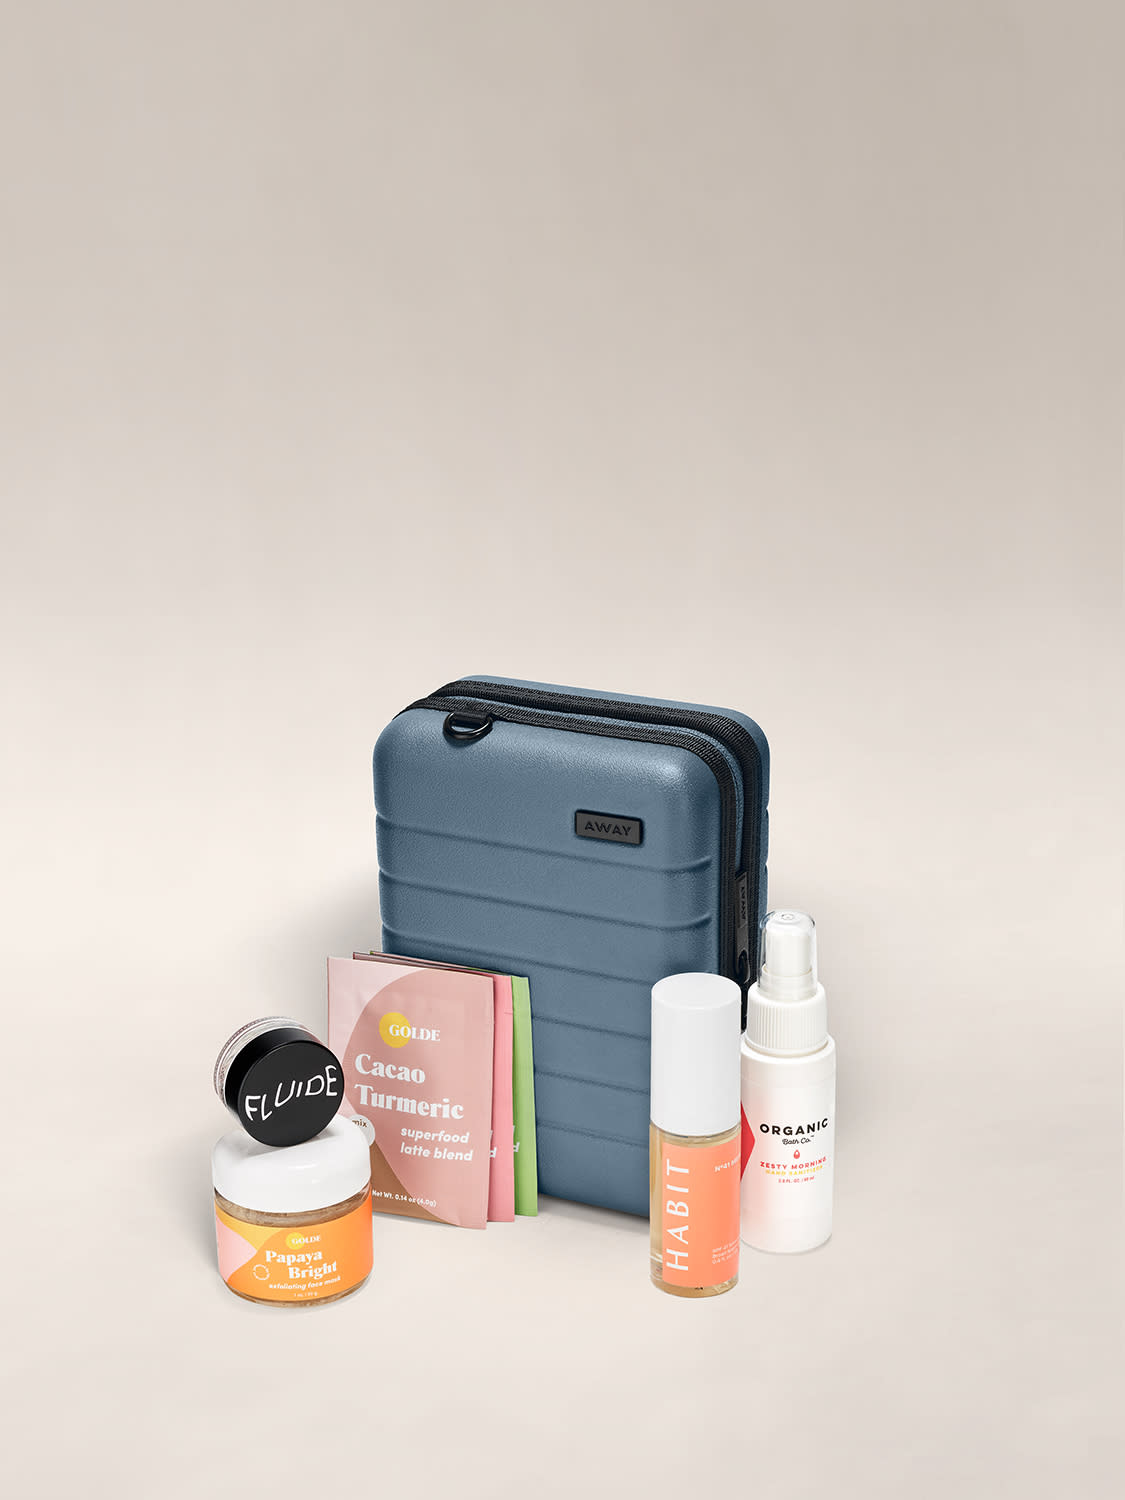 Mini suitcase in coast shown behind a bottle of touchless SPF mist, hand sanitizer, three packs of latte samplers, a facemask and pink glitter.